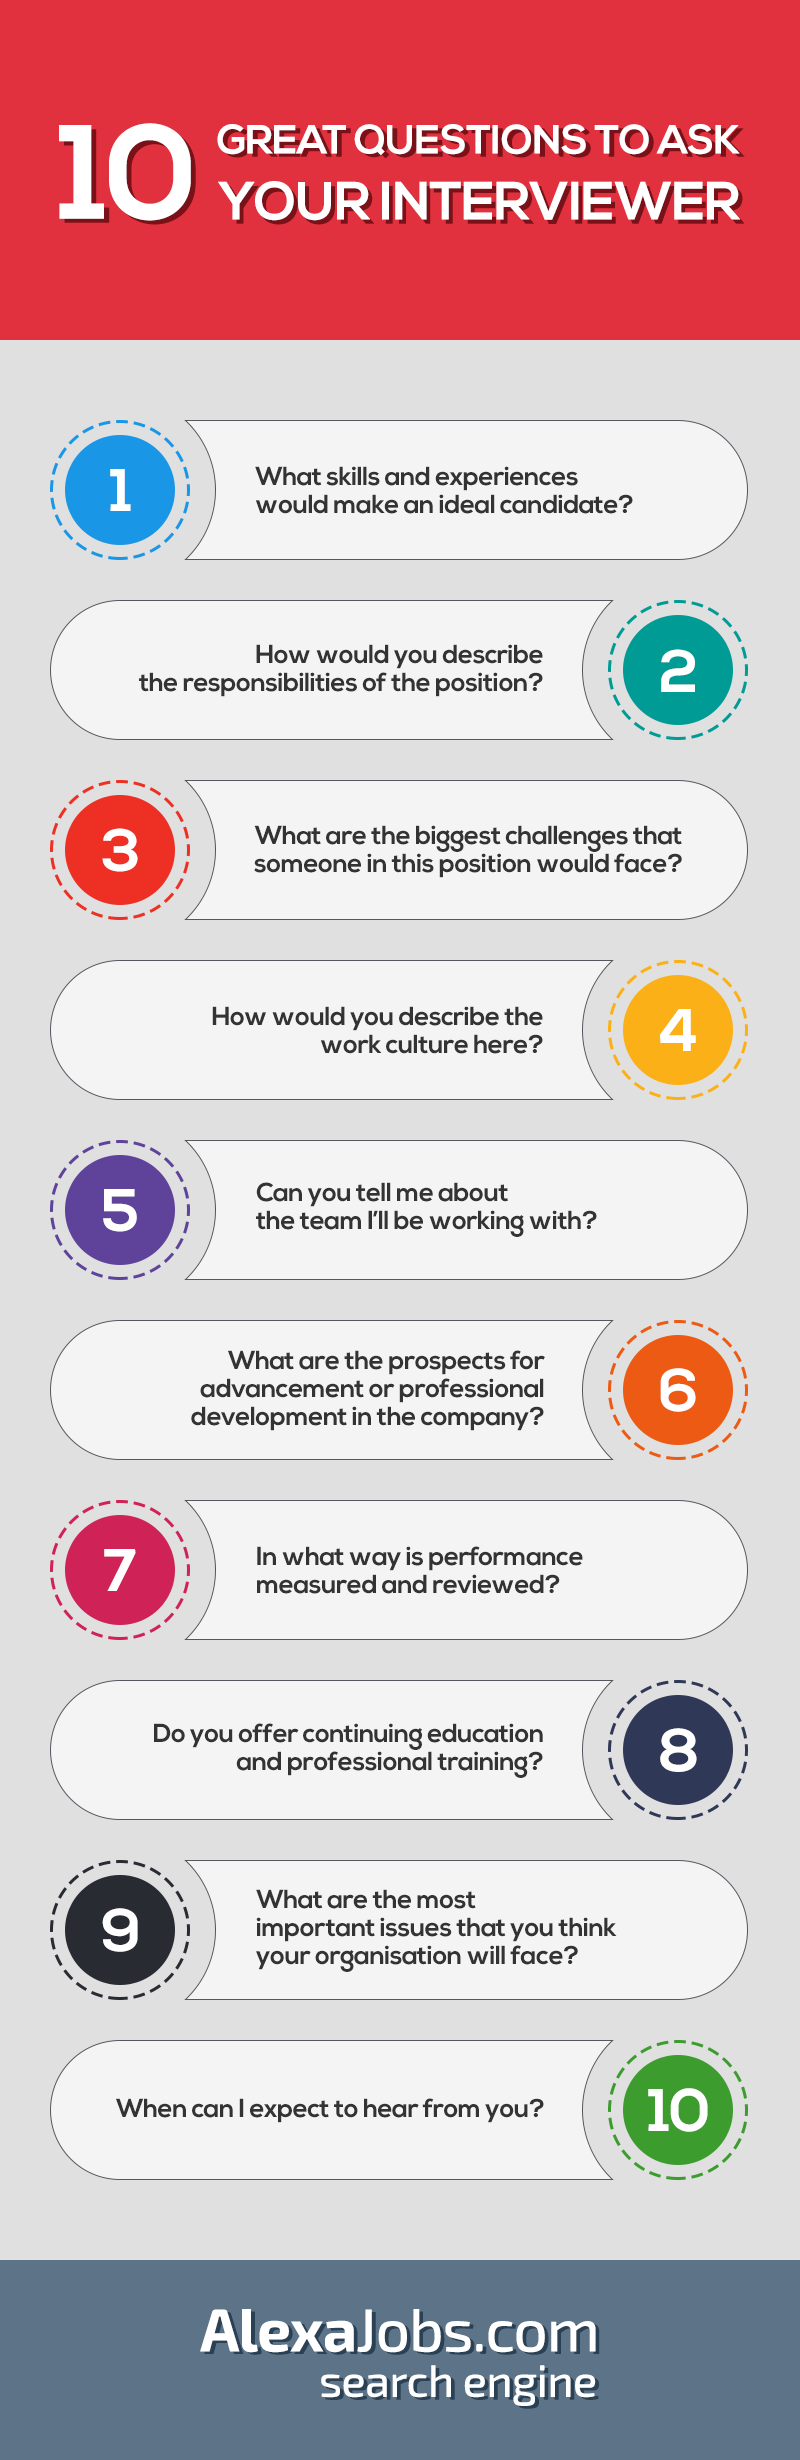 10 questions to ask your interviewer. | Interview, The internet ...